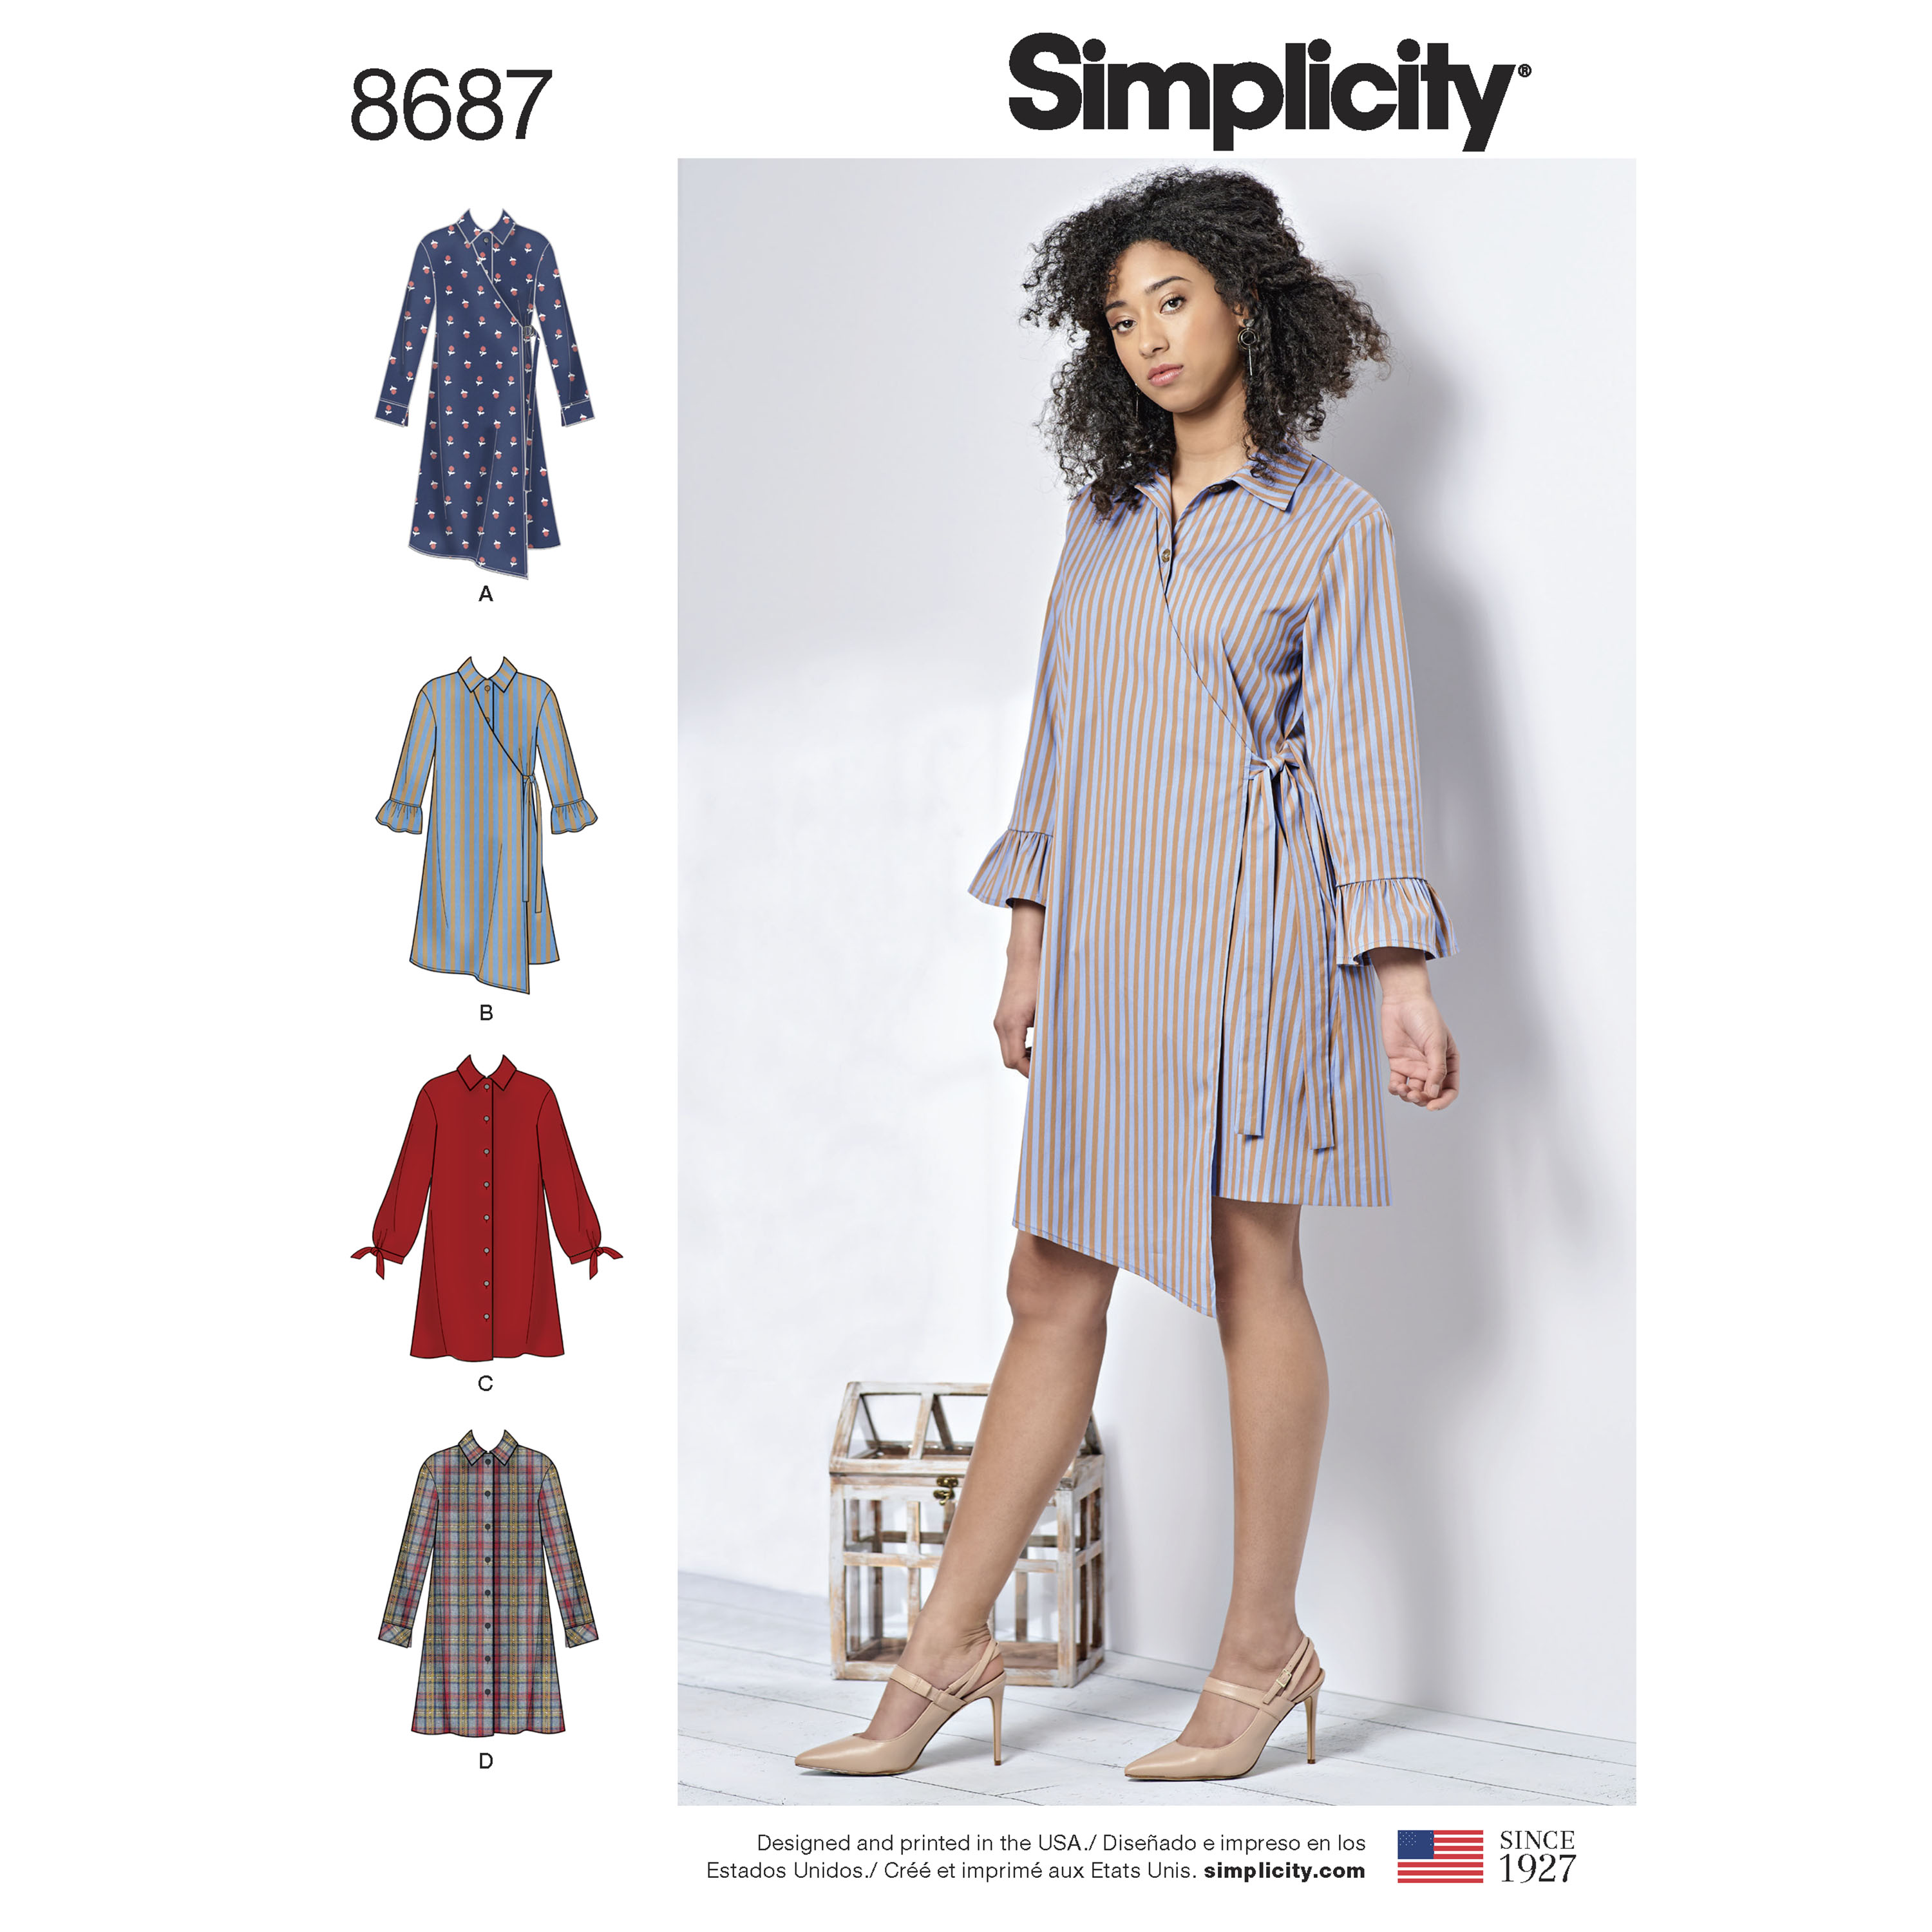 5c7588d40f6 PrevNext. Create a spin on the classic shirt dress with this dress pattern  for Misses and Women.